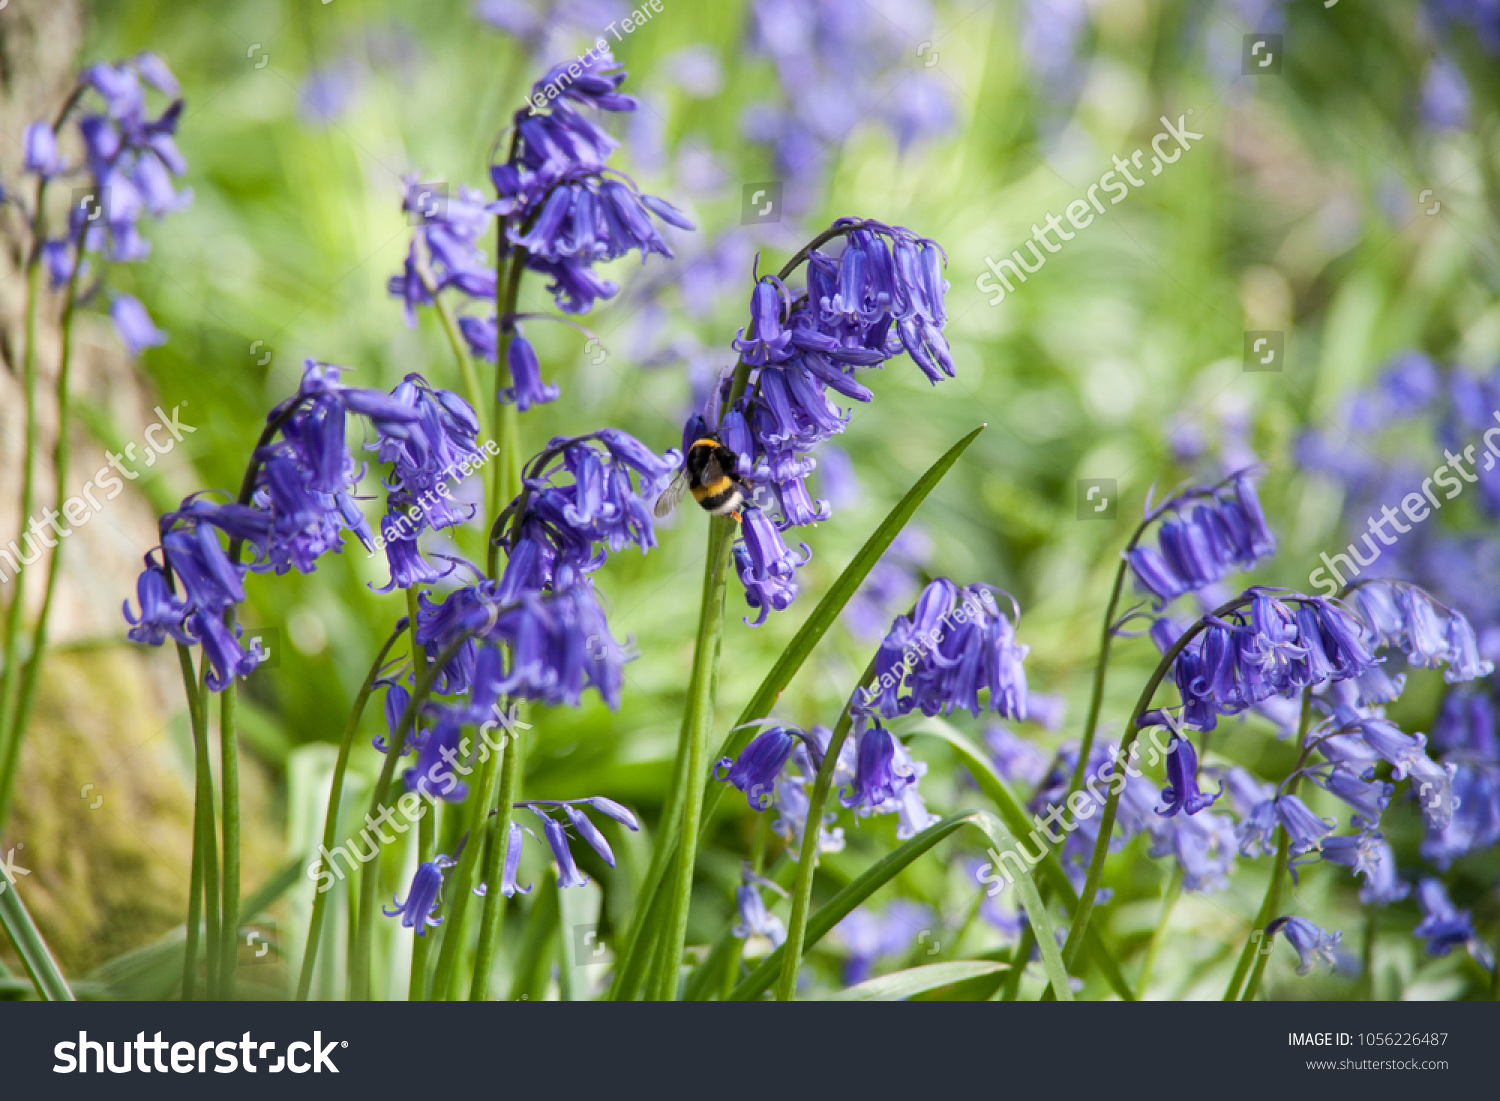 Bluebell bee bluebells woodland flowers which stock photo 1056226487 bluebell bee bluebells woodland flowers which stock photo 1056226487 shutterstock izmirmasajfo